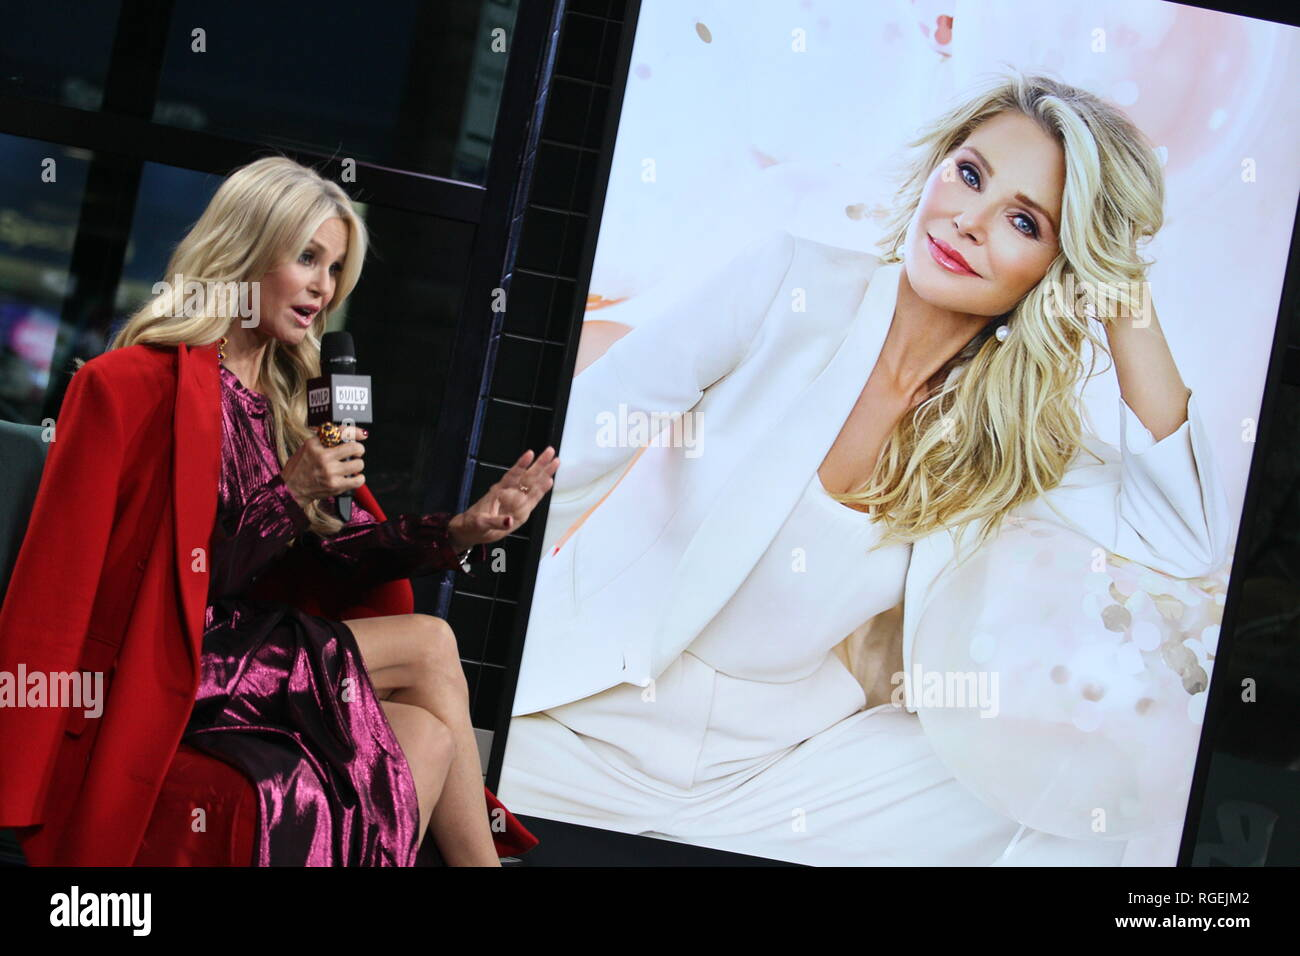 """New York, USA. 29 Jan, 2019. Christie Brinkley at The Tuesday, Jan 29, 2019 BUILD Series Inside Candids discussing """"Milestones of Me"""" Campaign at BUILD Studio in New York, USA. Credit: Steve Mack/S.D. Mack Pictures/Alamy Live News Stock Photo"""